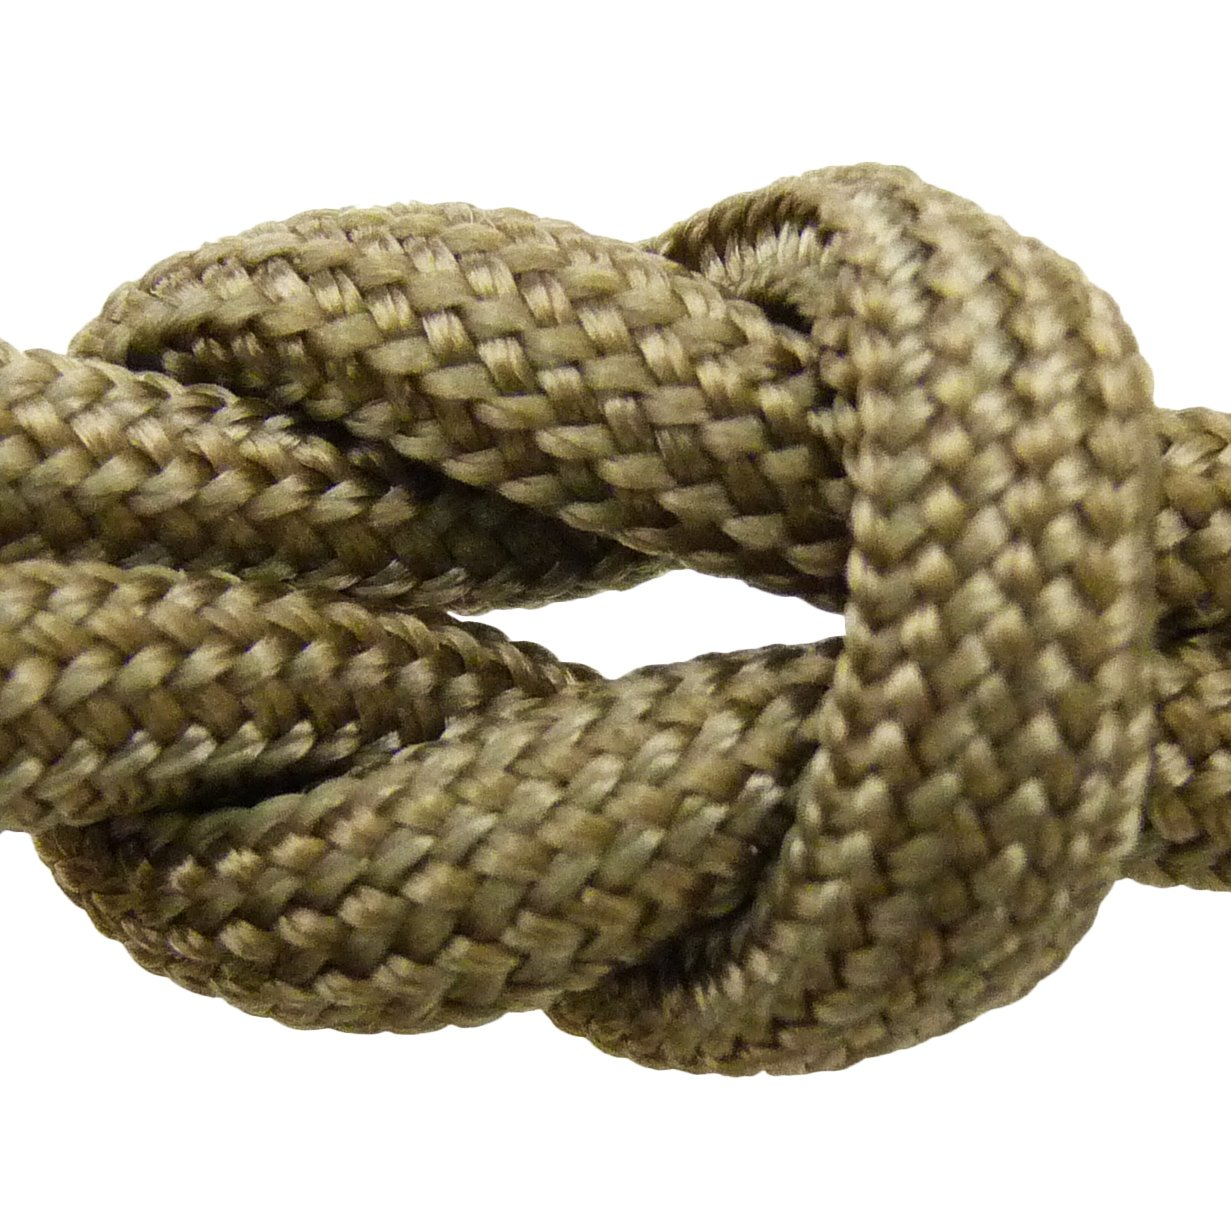 MilSpec Paracord Desert Tan 499, 310 ft. Spool, Military Survival Braided Parachute 550 Cord. Use with Paracord Tools for Tent Camping, Hiking, Hunting Ropes, Bracelets & Projects. Plus 2 eBooks.